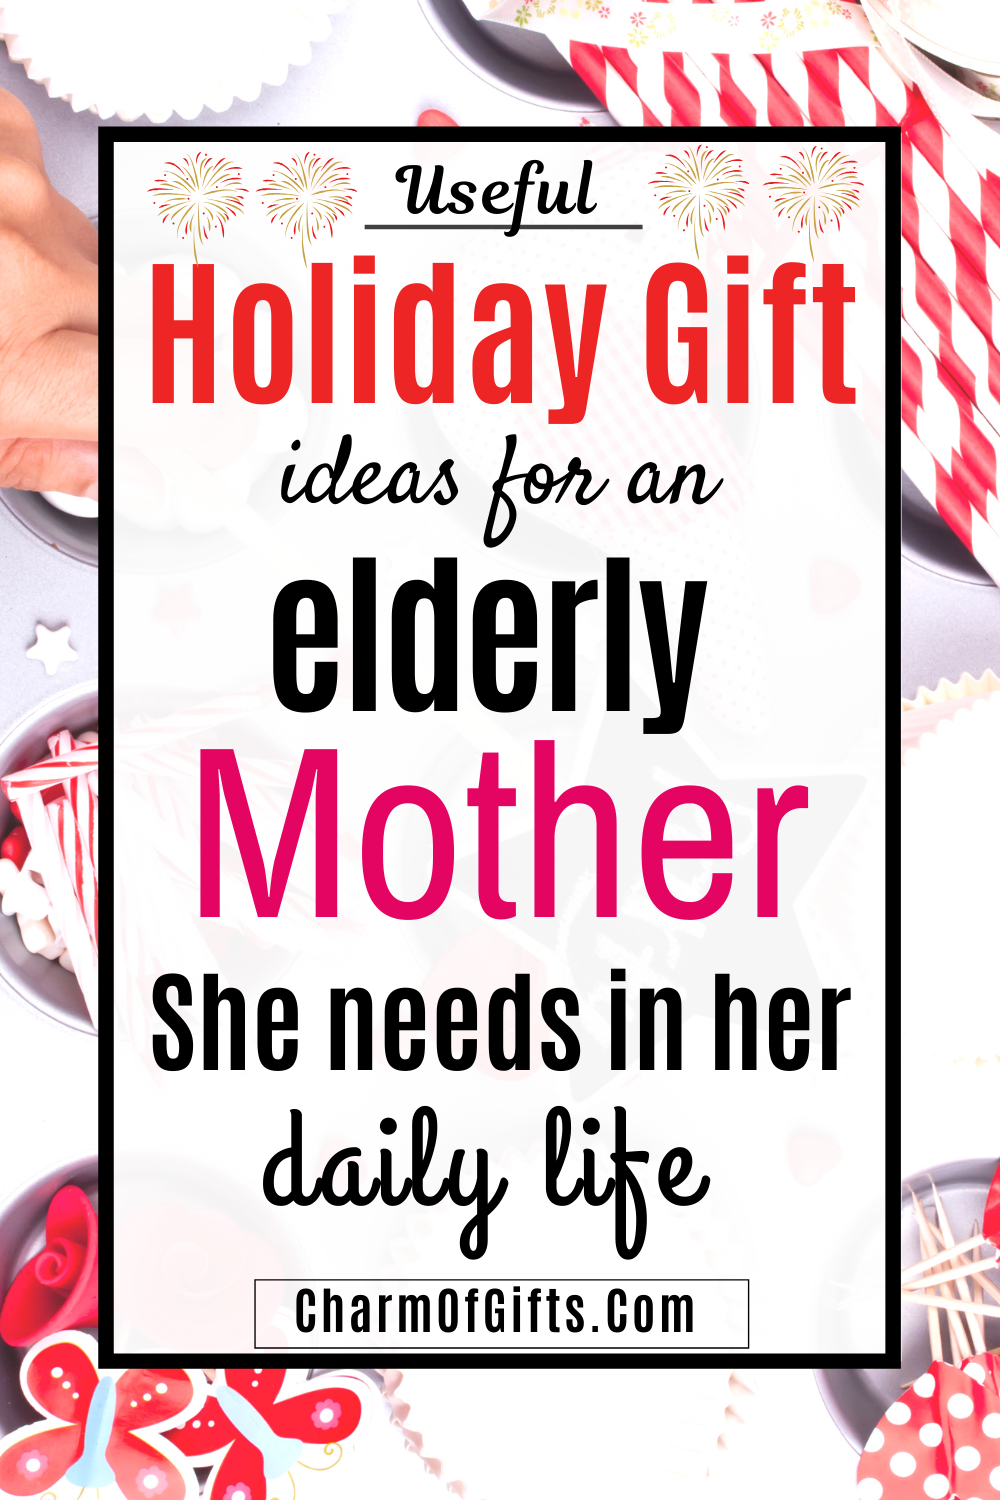 Practical Gifts For Elderly They Will Appreciate (Nursing